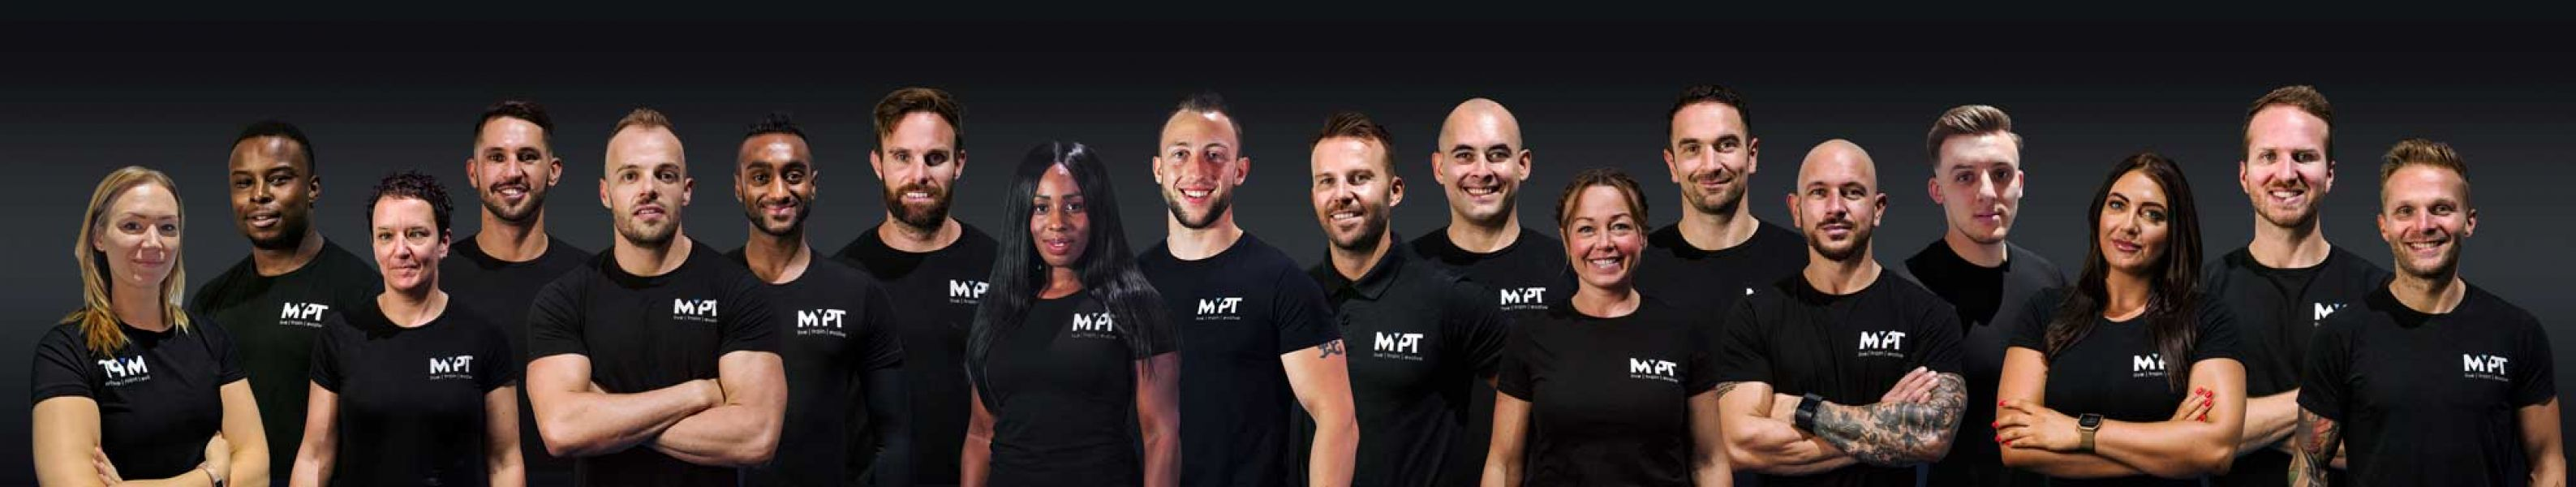 MYPT Starter Pack - 2 sessions for £40!